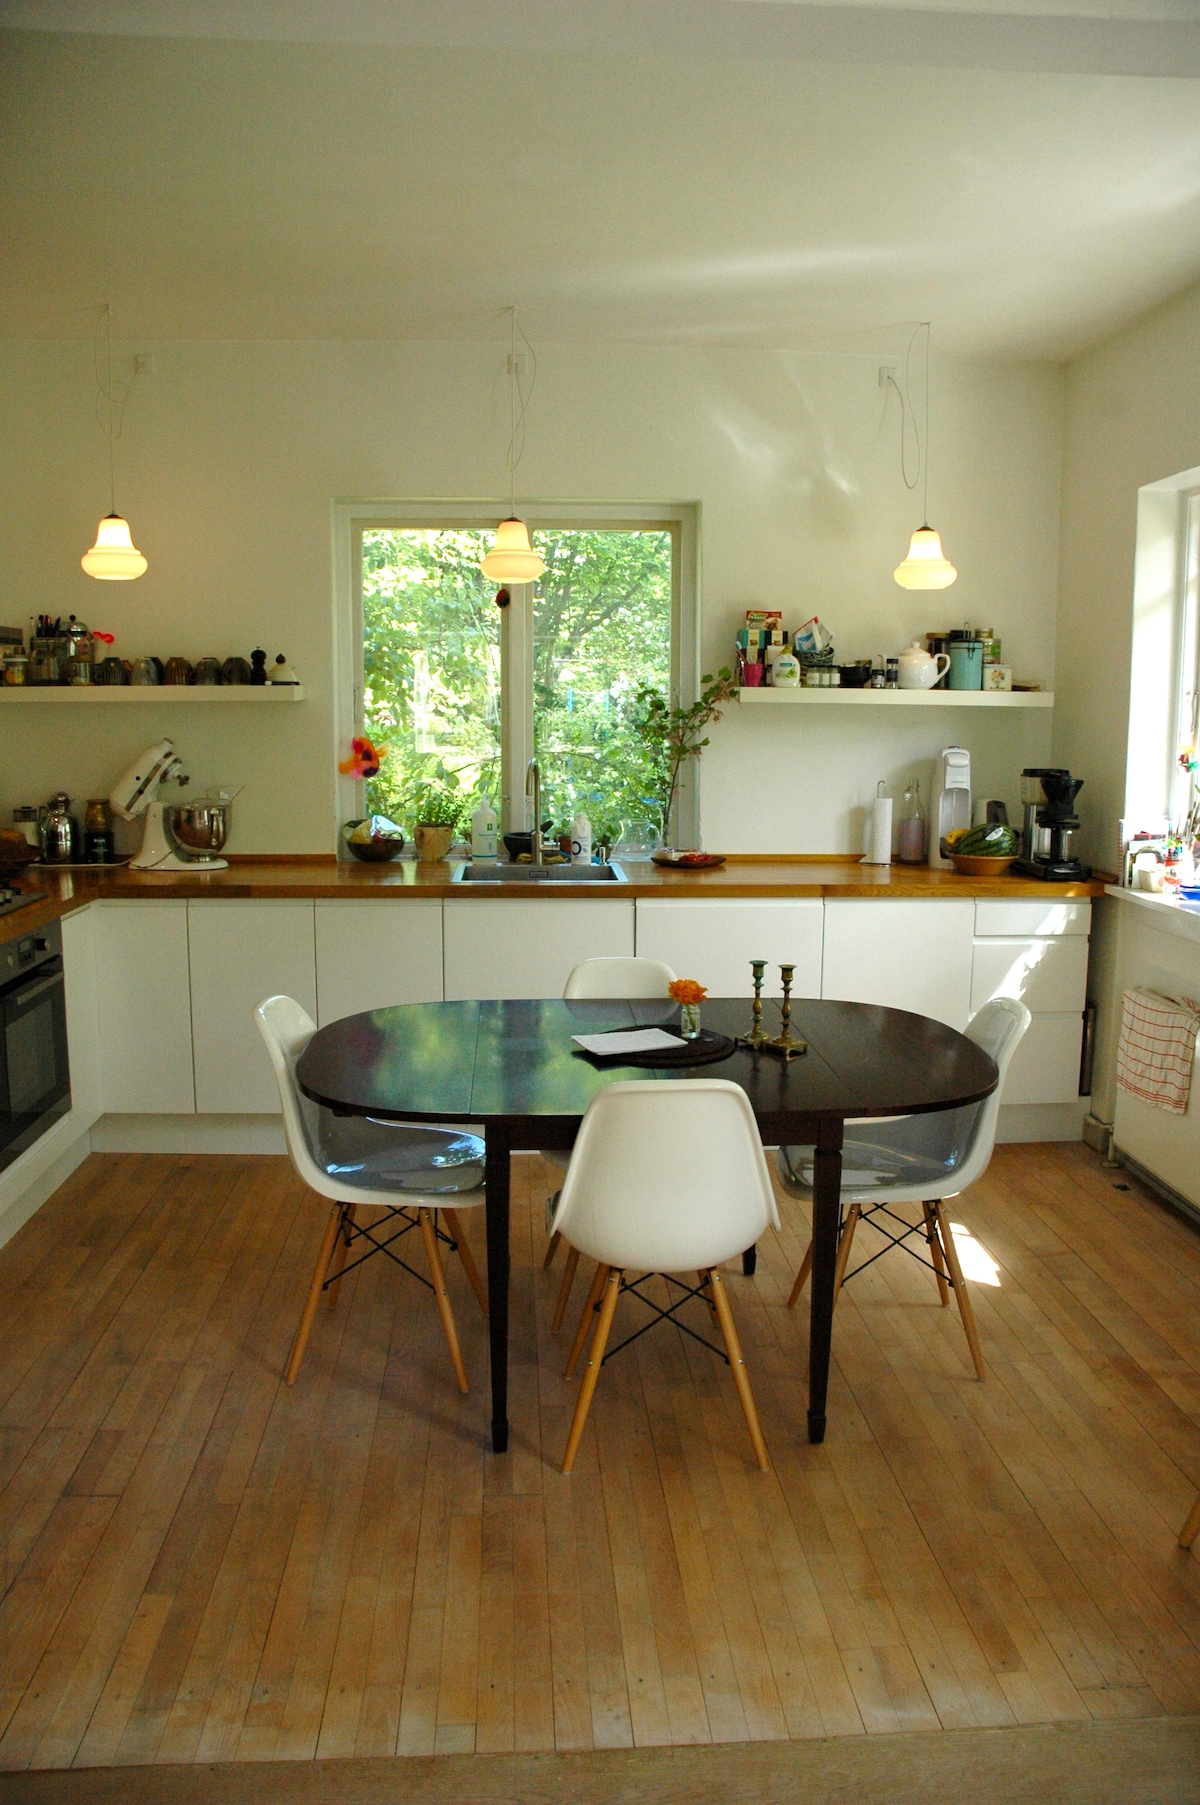 Kitchen - fully equipped including basic food stuff, coffee machine and dishwasher.